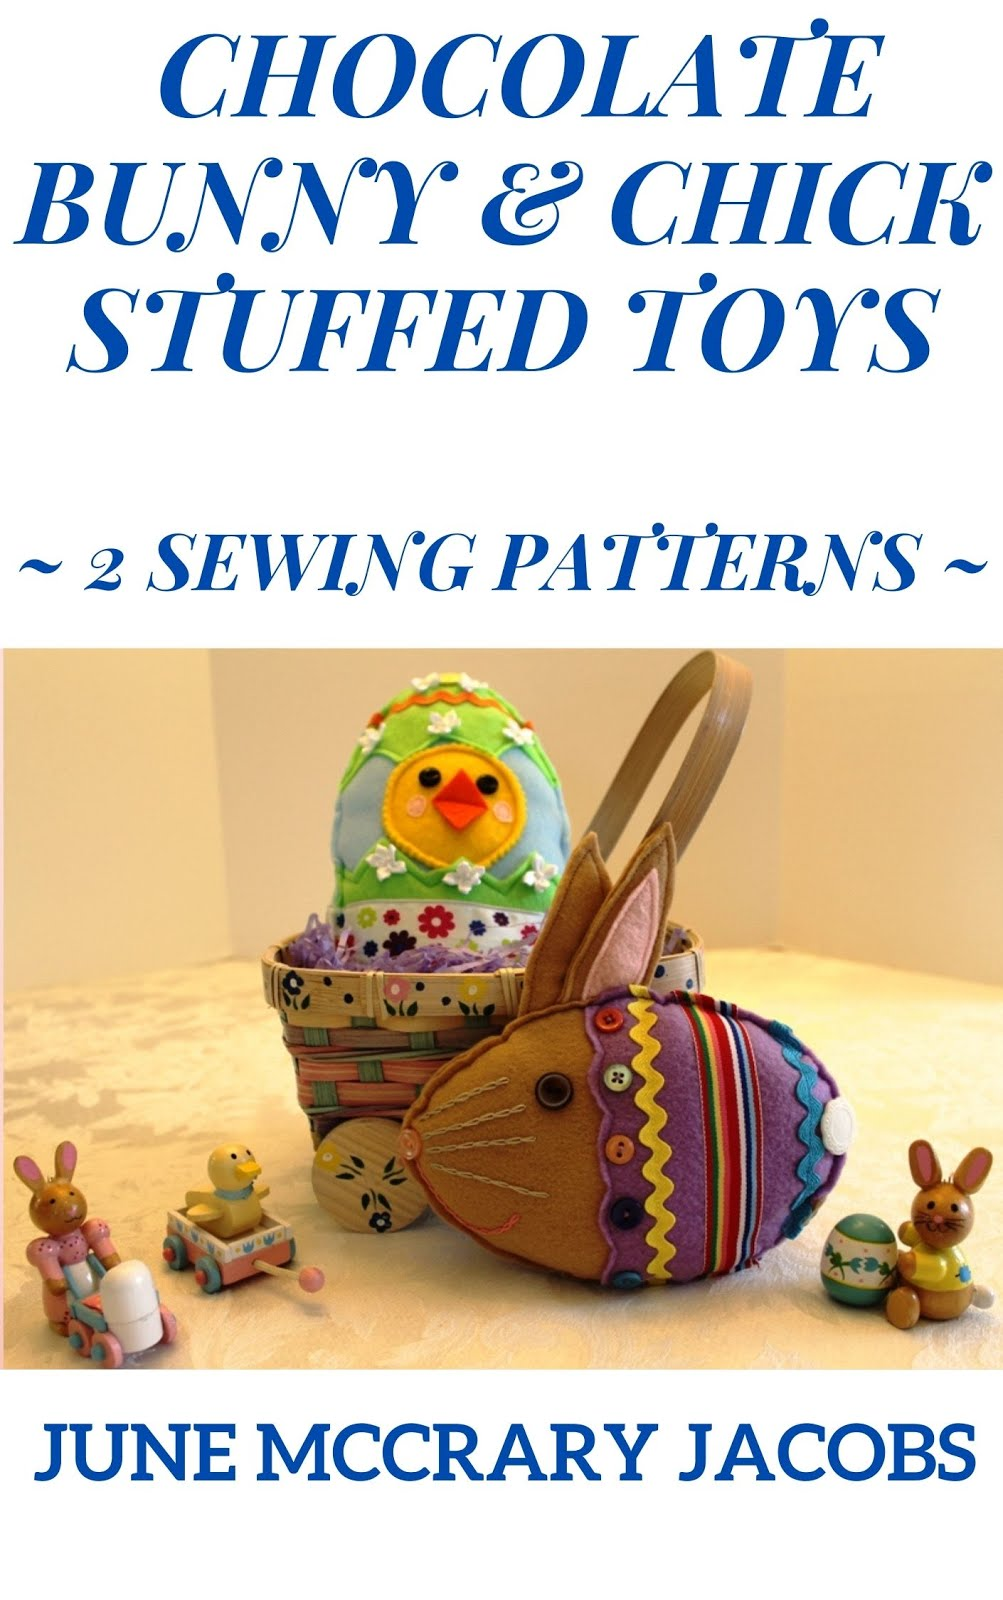 Find my 'Chocolate Bunny & Chick Stuffed Toys' sewing pattern book on Amazon!